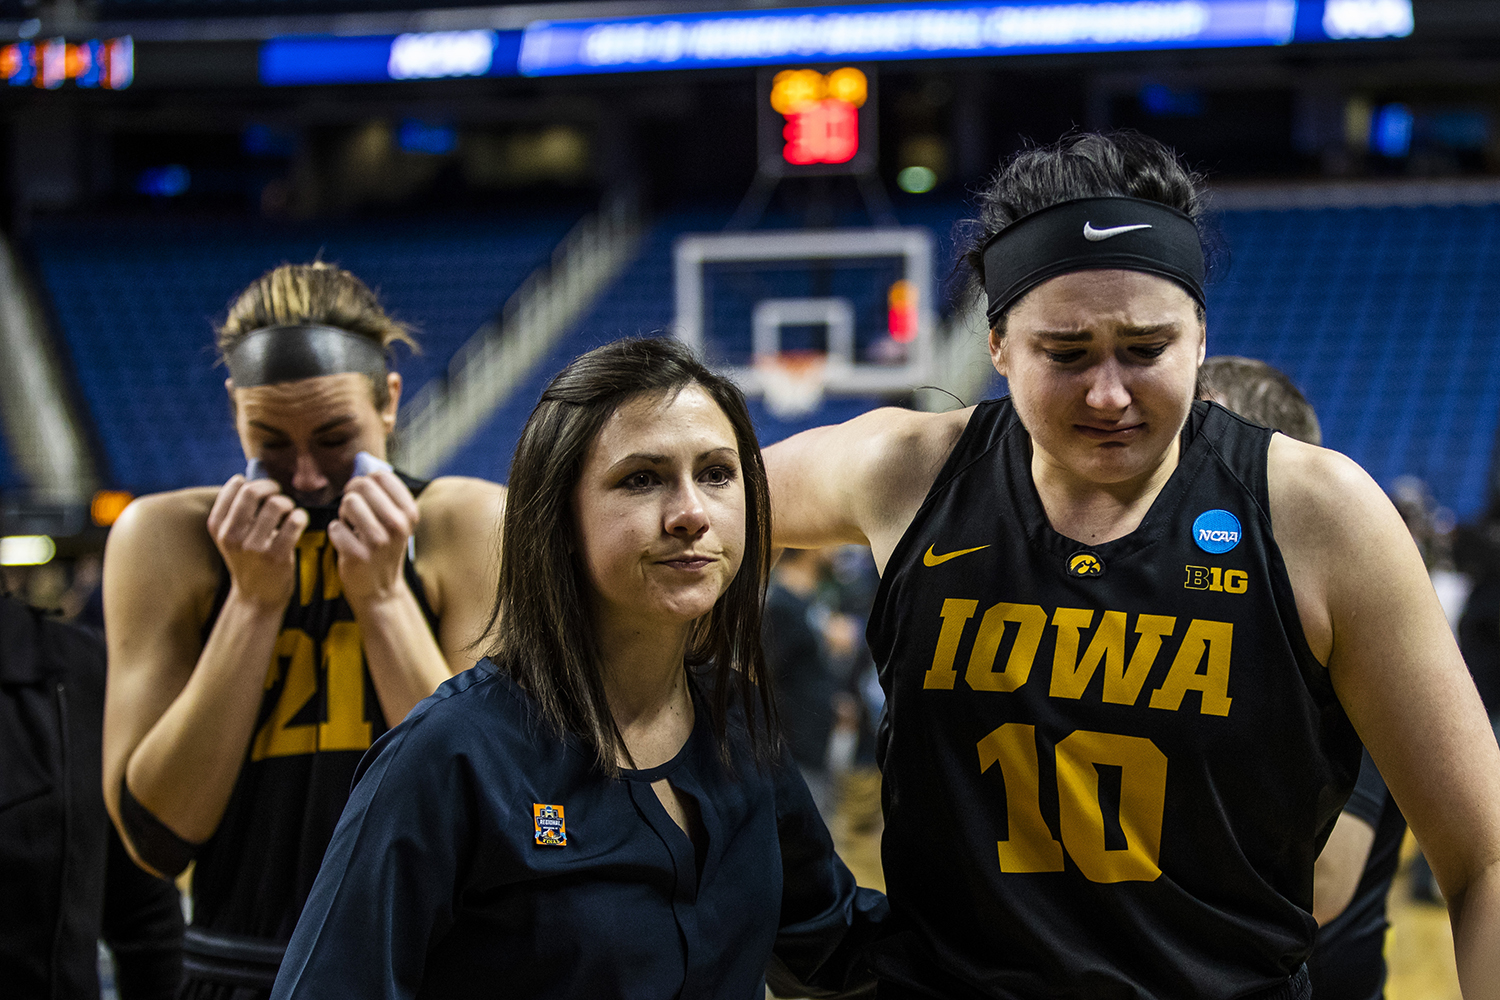 Iowa+center+Megan+Gustafson+%2810%29+and+forward+Hannah+Stewart+%2821%29+get+emotional+following+the+NCAA+Elite+8+game+against+Baylor+at+the+Greensboro+Coliseum+Complex+on+Monday%2C+April+1%2C+2019.+The+Bears+defeated+the+Hawkeyes+85-53.